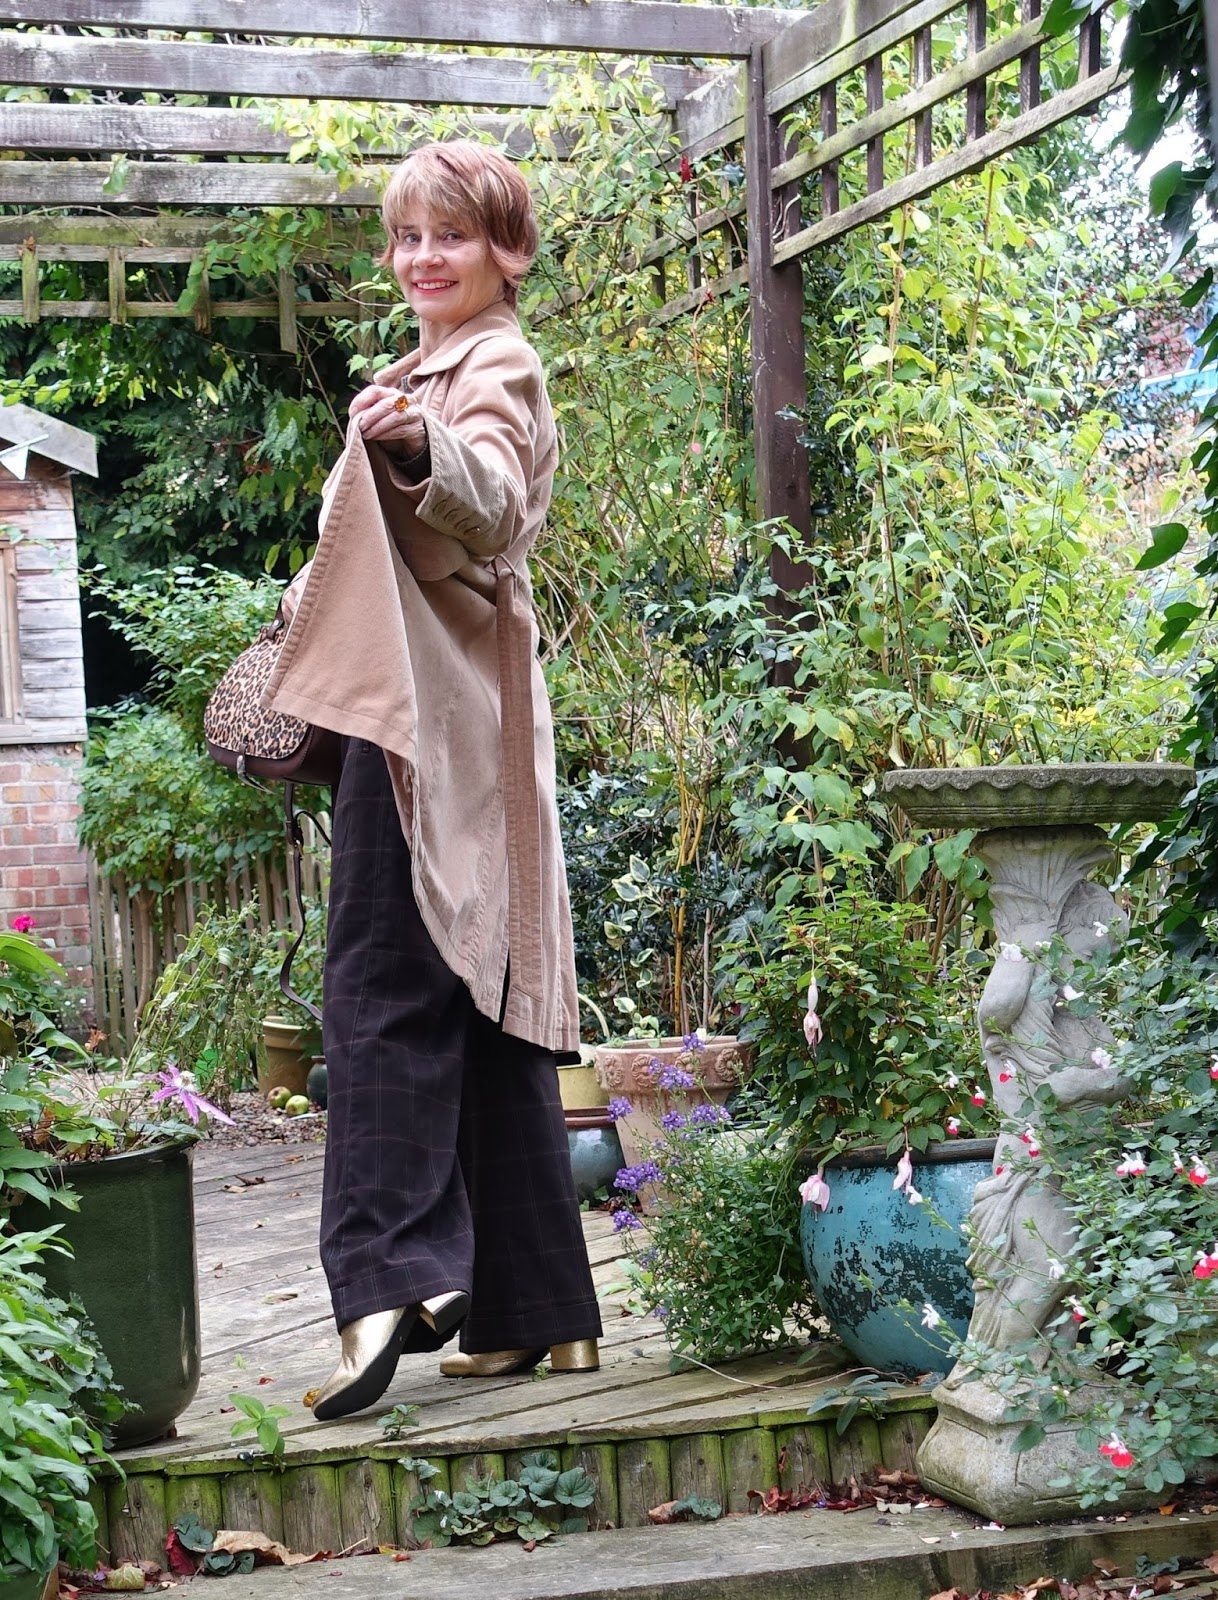 Image showing Is This Mutton blogger Gail Hanlon in thrifted corduroy coat and leopard print bag